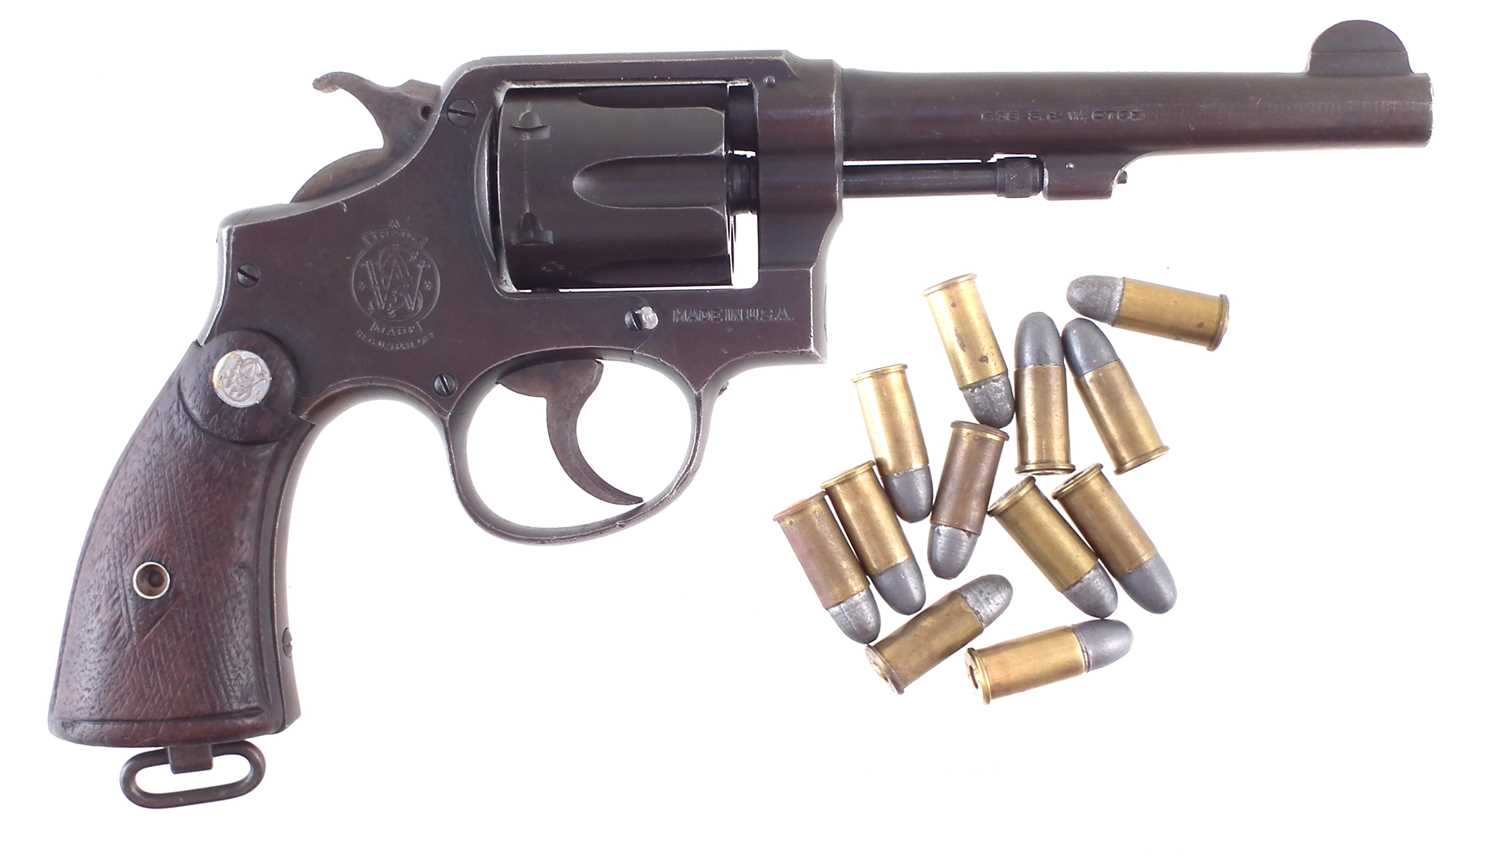 Lot -Deactivated Smith and Wesson .38 Revolver US Property New Zealand Issue